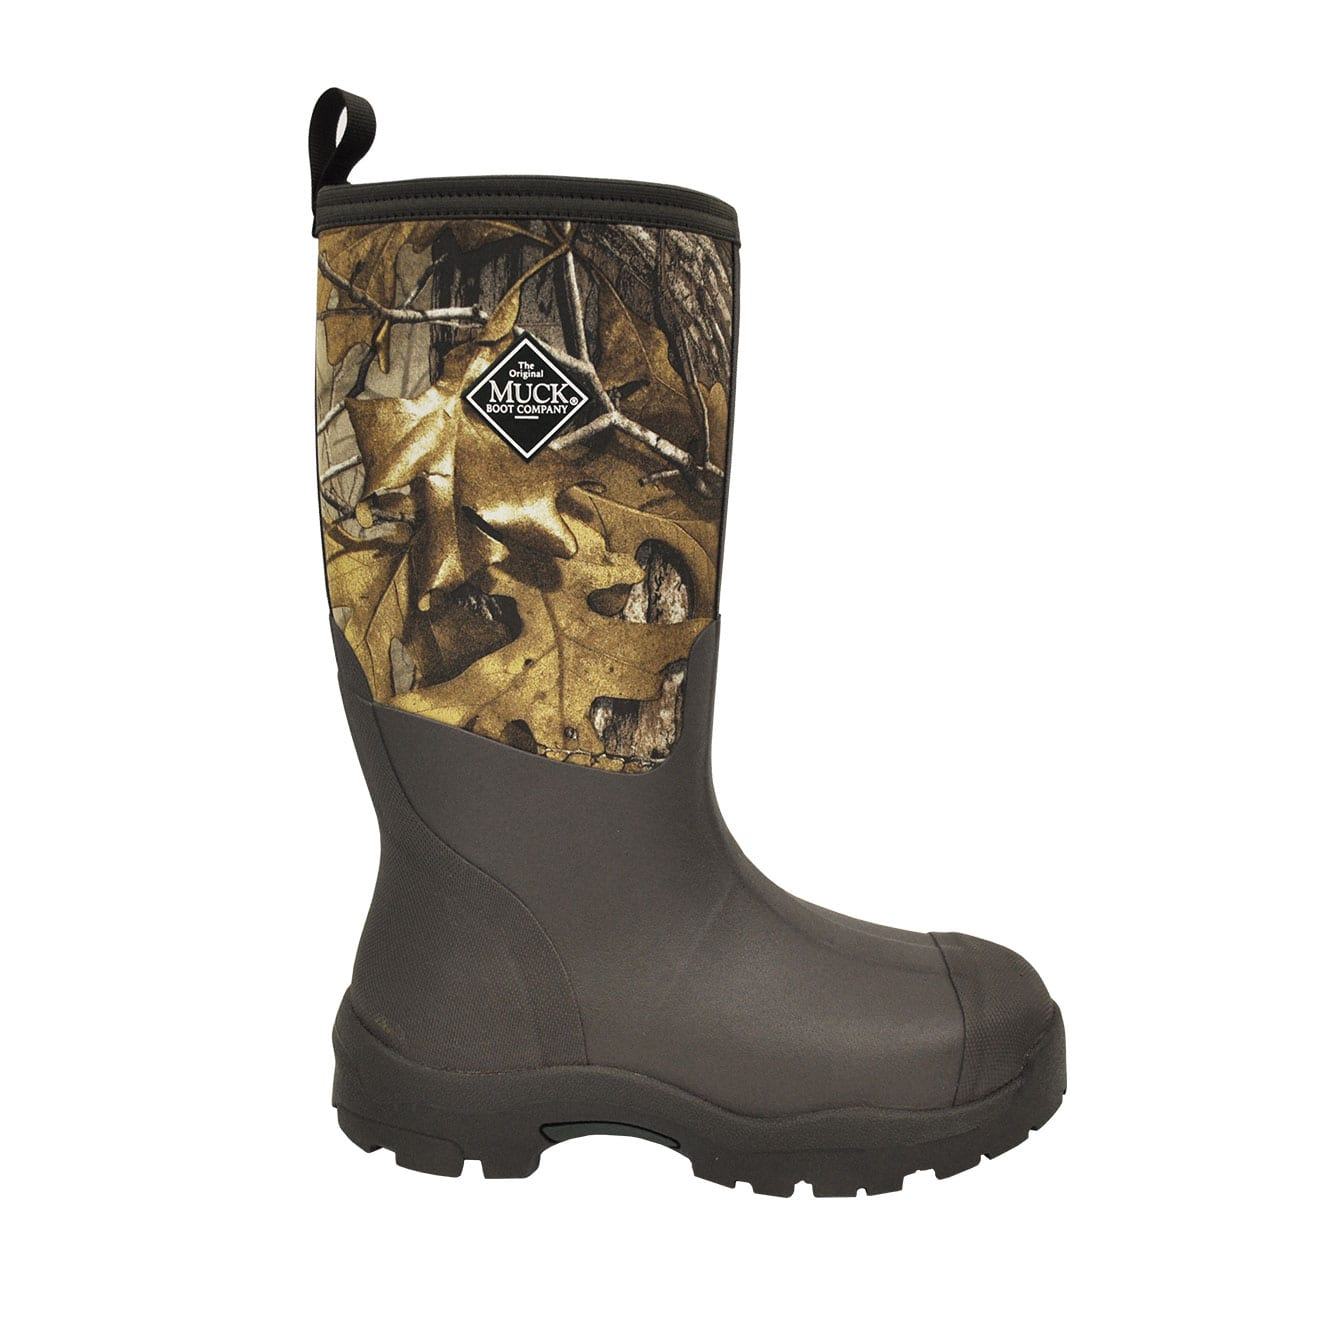 Muck Boot Derwent II Wellington Boot - The Sporting Lodge